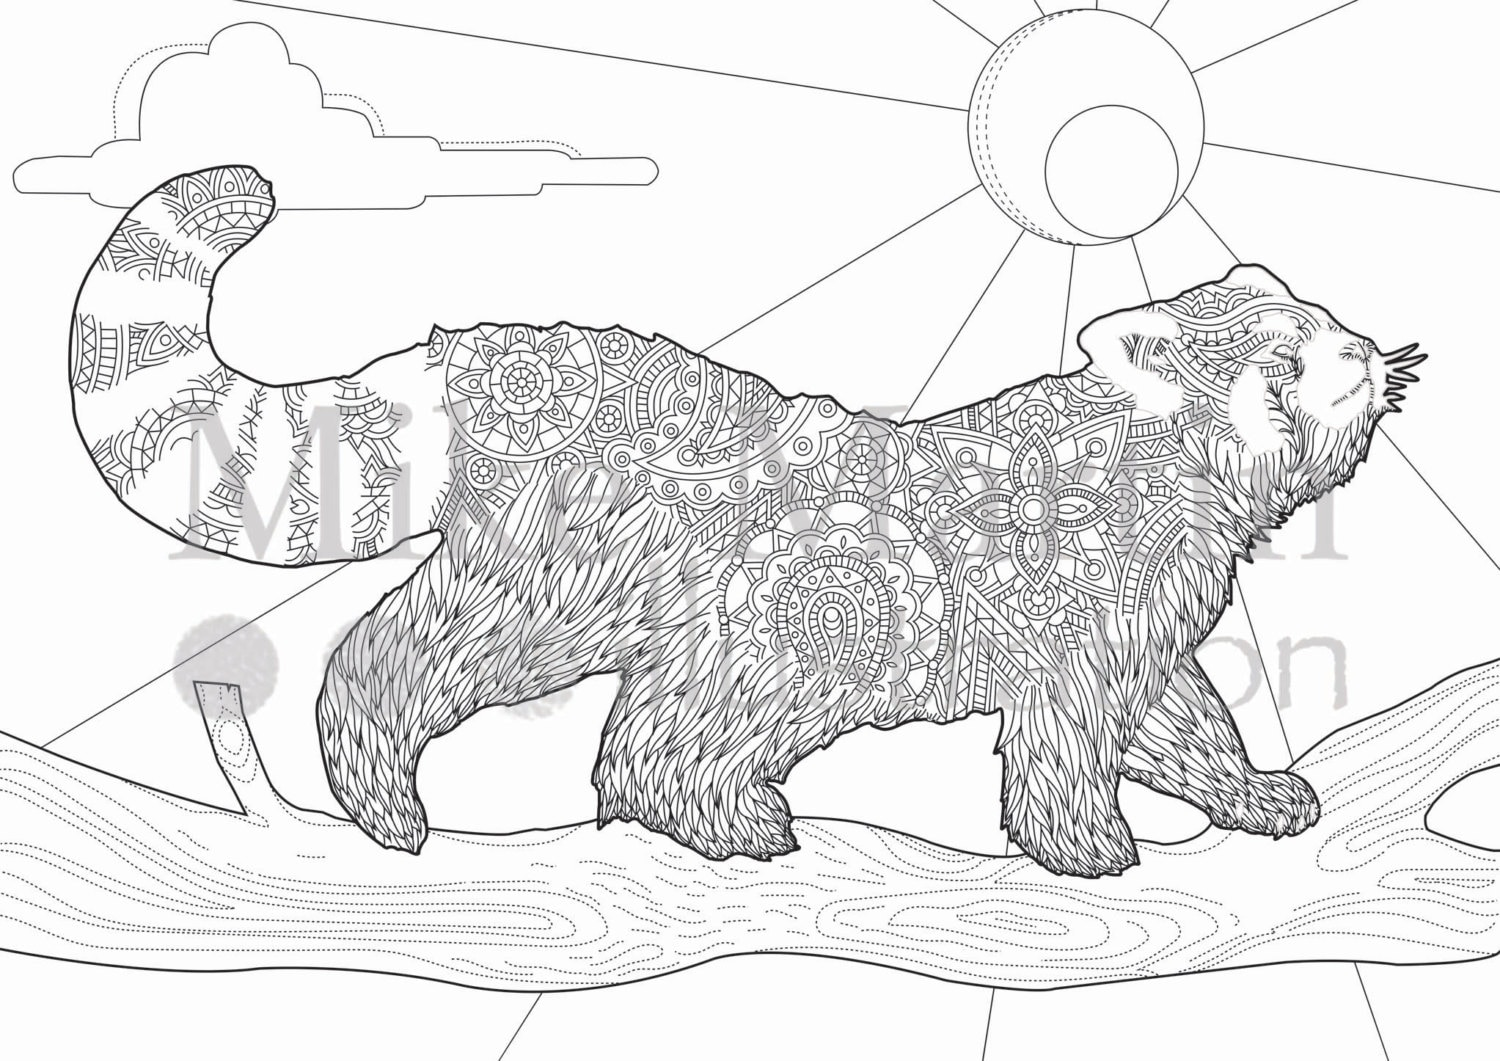 Red Panda Coloring Page Printable Red Panda Coloring Page Instant Download Adult